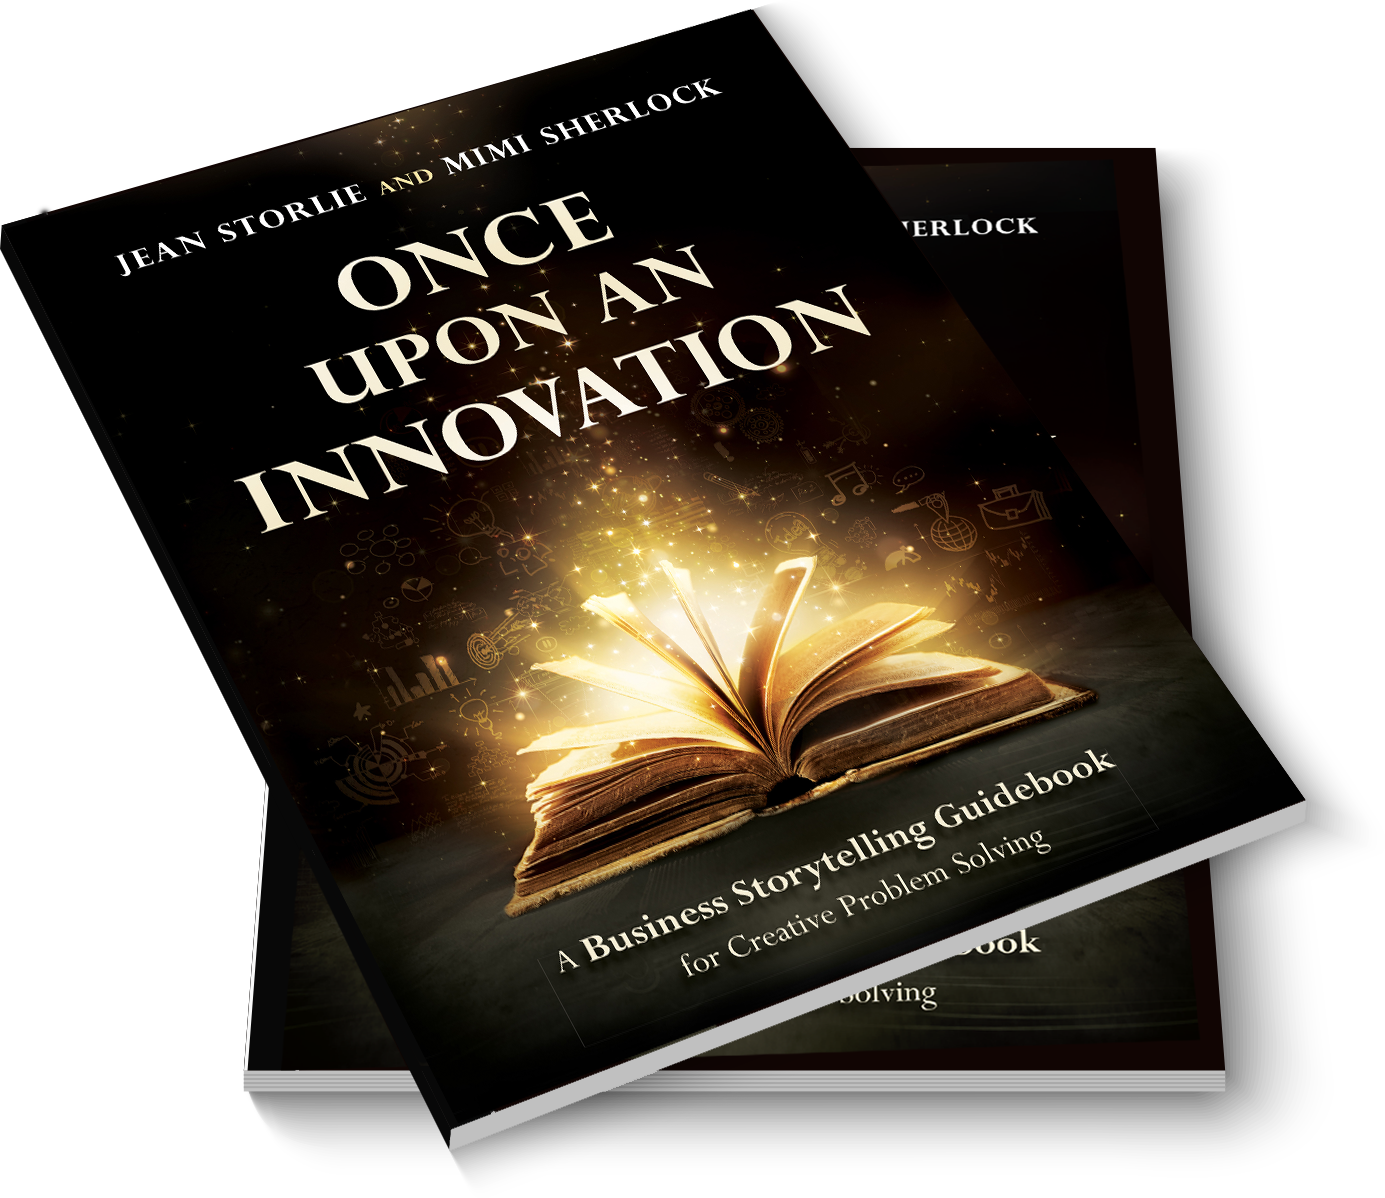 Once Upon an Innovation book stack